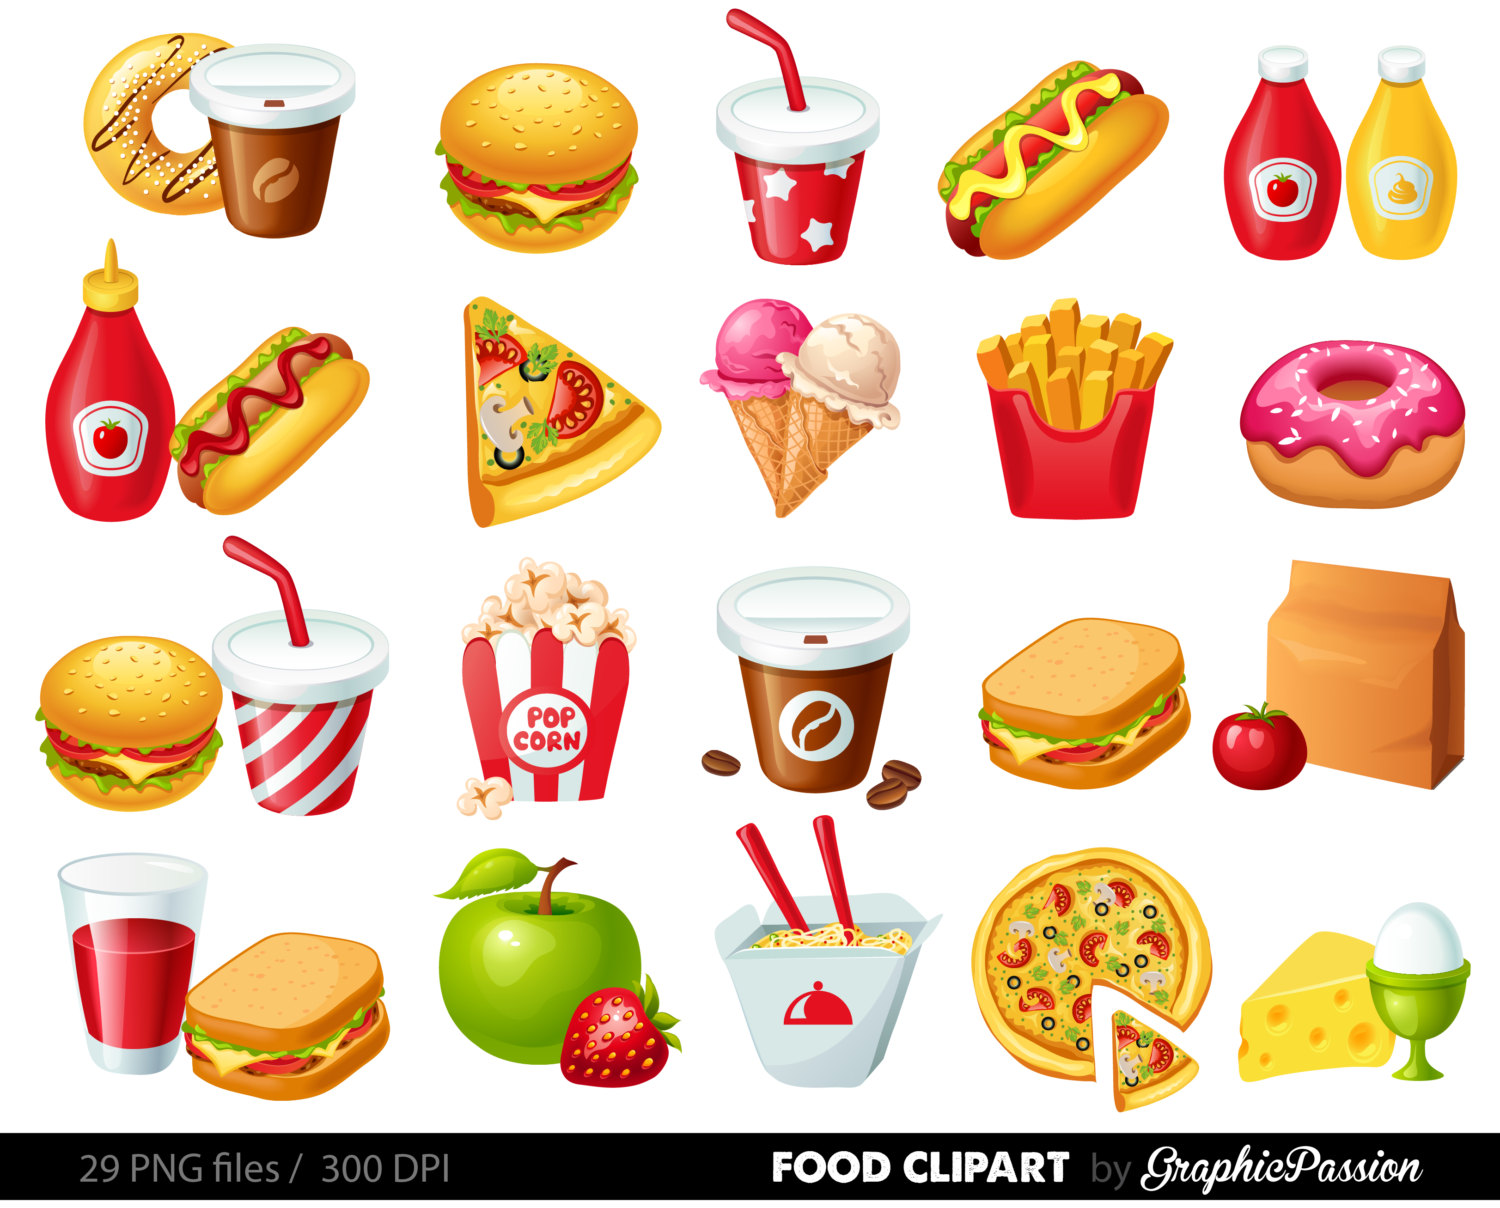 Food graphics clipart banner black and white library Free Food Graphics Cliparts, Download Free Clip Art, Free Clip Art ... banner black and white library